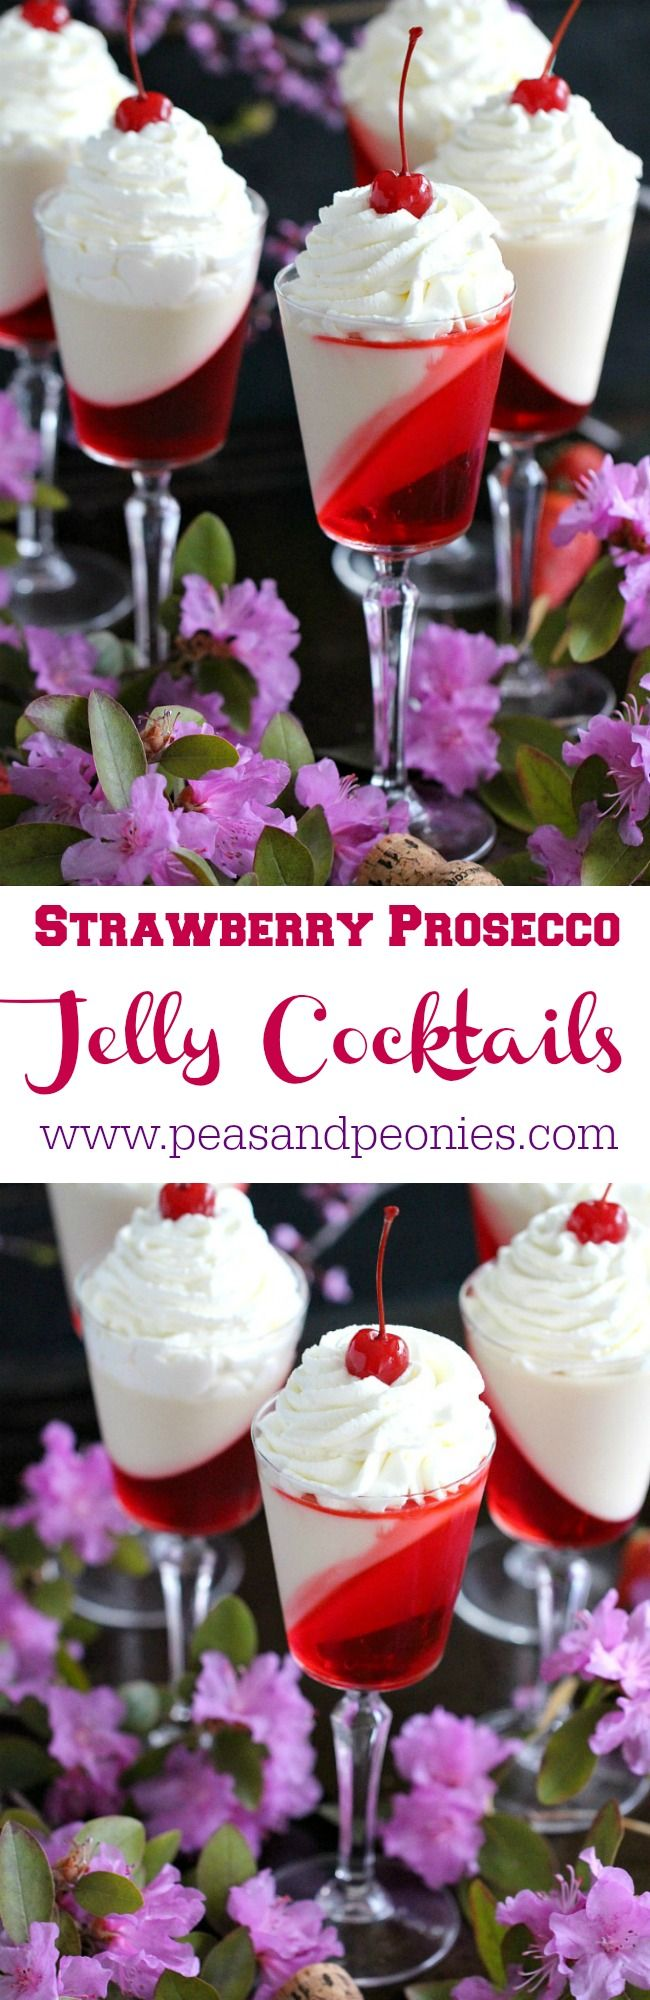 Strawberry Prosecco Jelly Cocktails are a combination of sweet and fragrant strawberry infused Prosecco jelly and creamy vanilla condensed milk jelly.